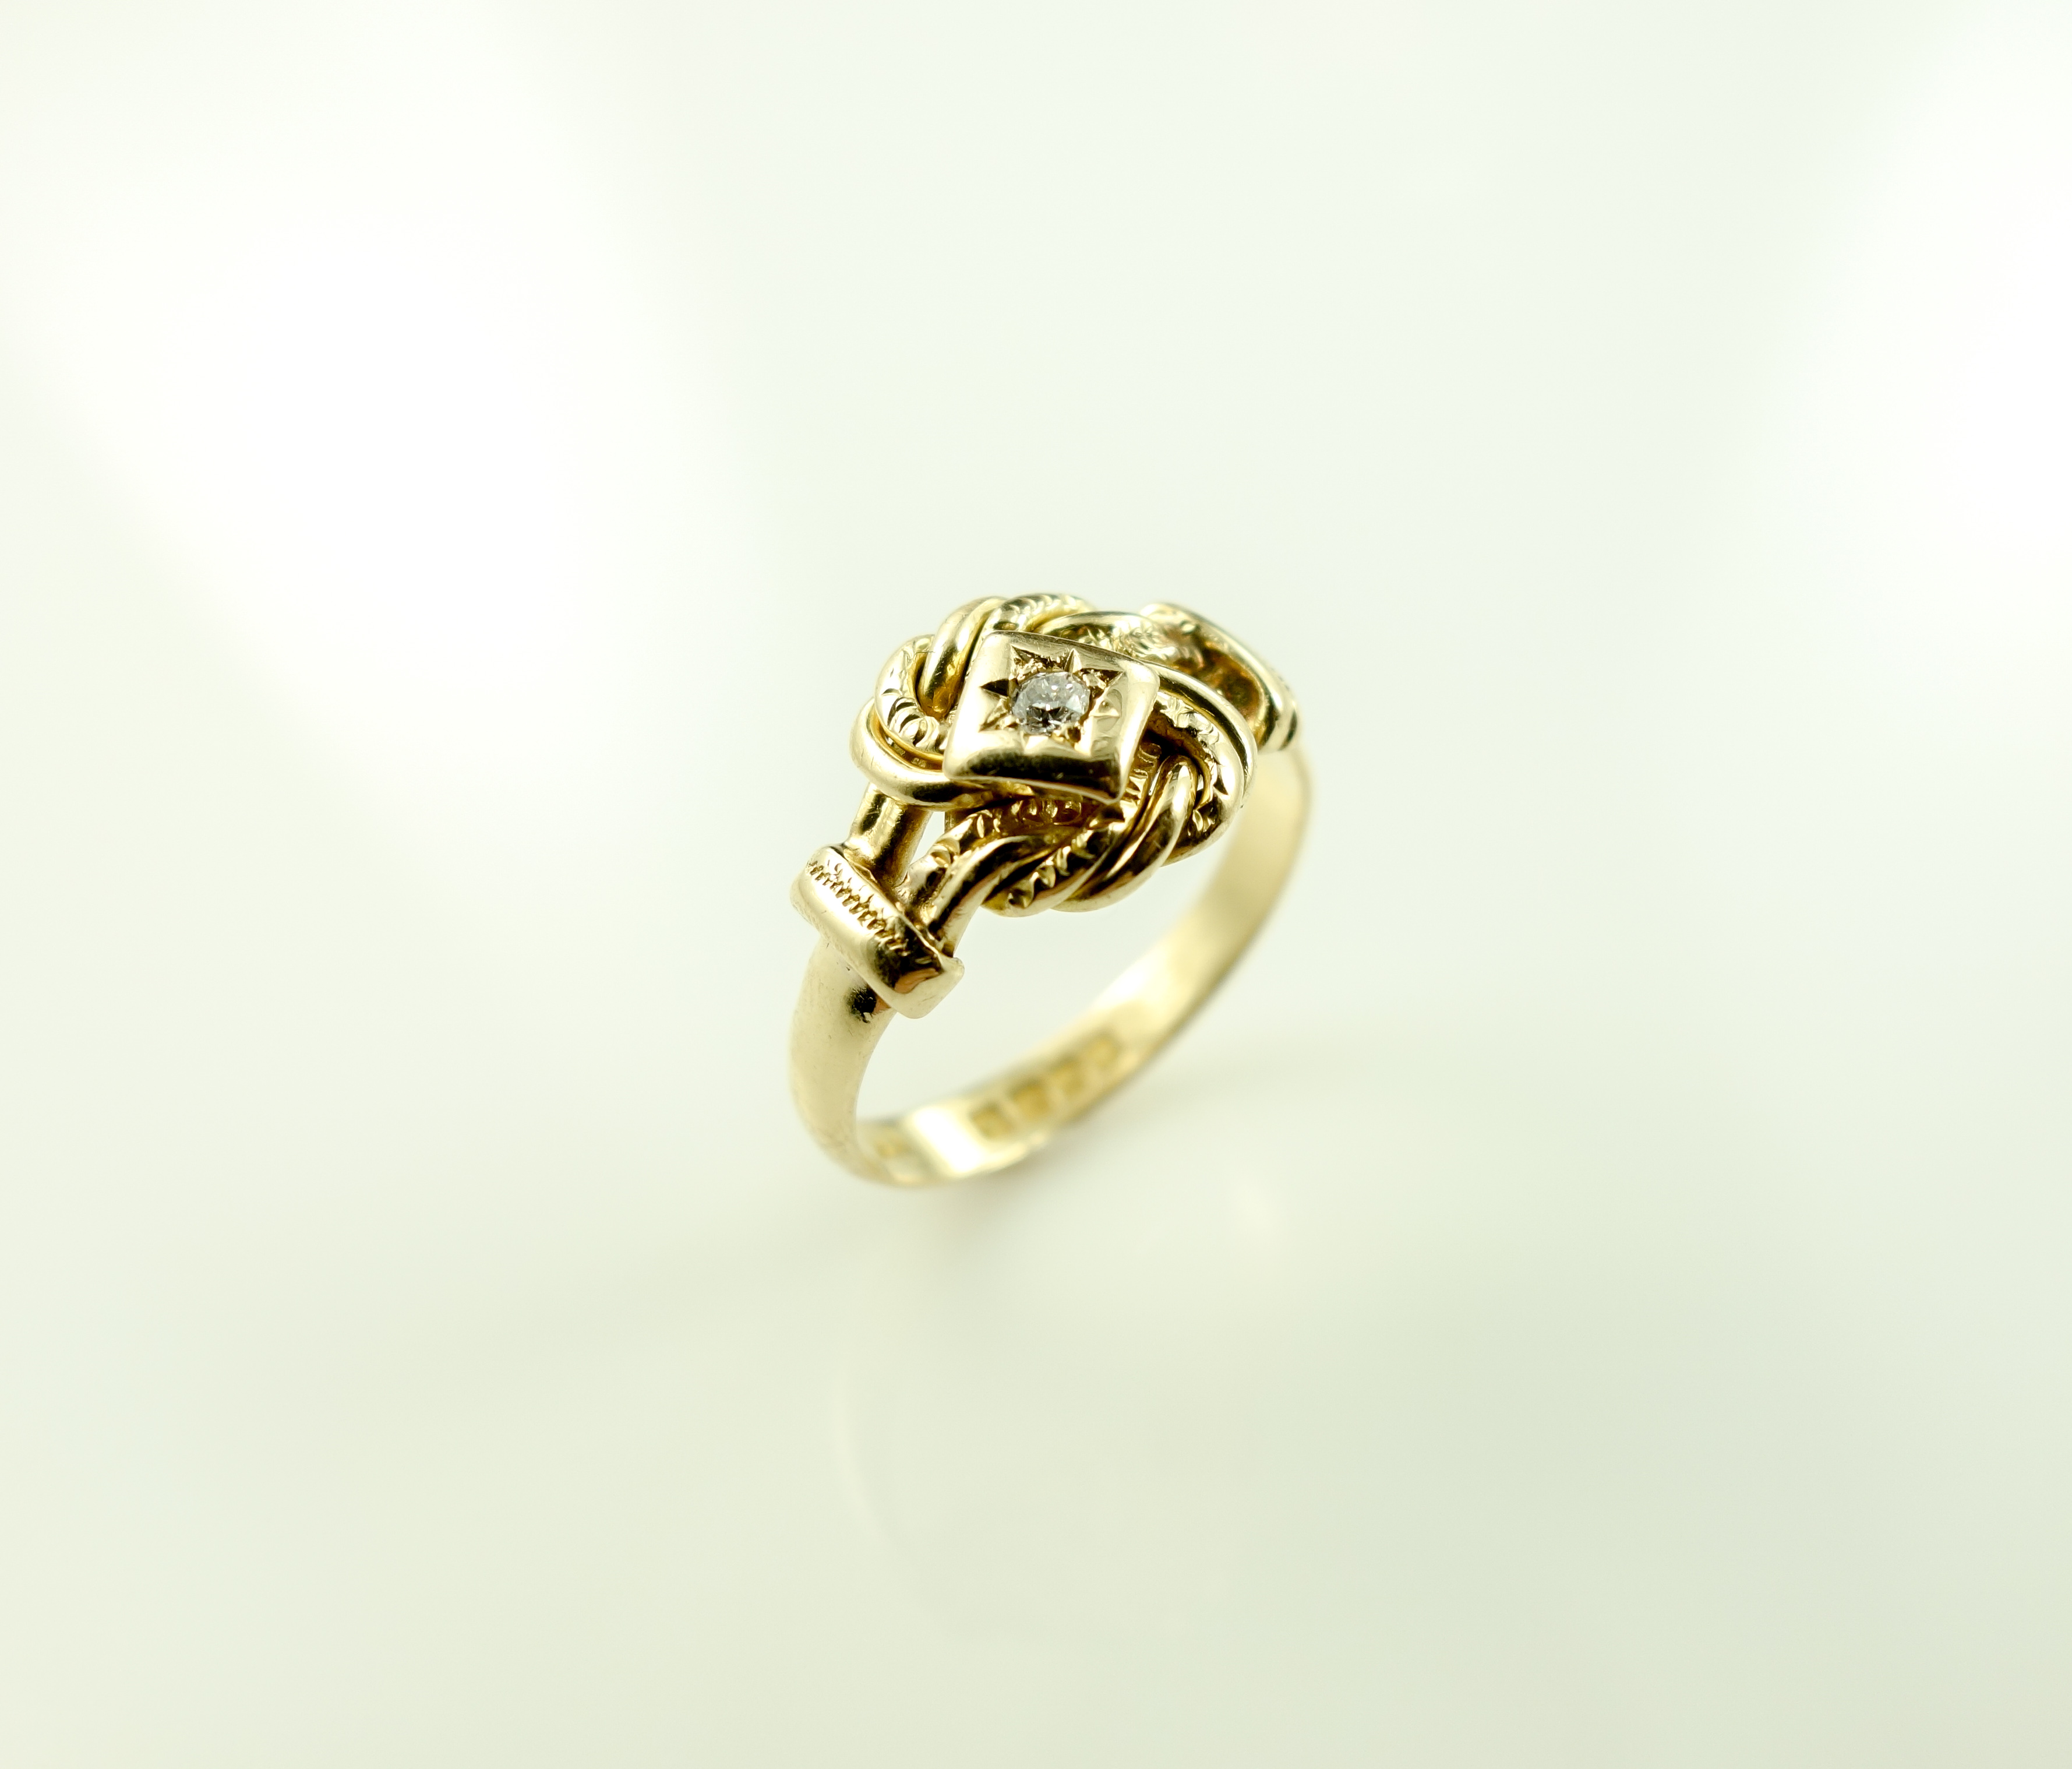 Ring-18ct Lovers knot with diamond 4 8g   Victoria & Albert